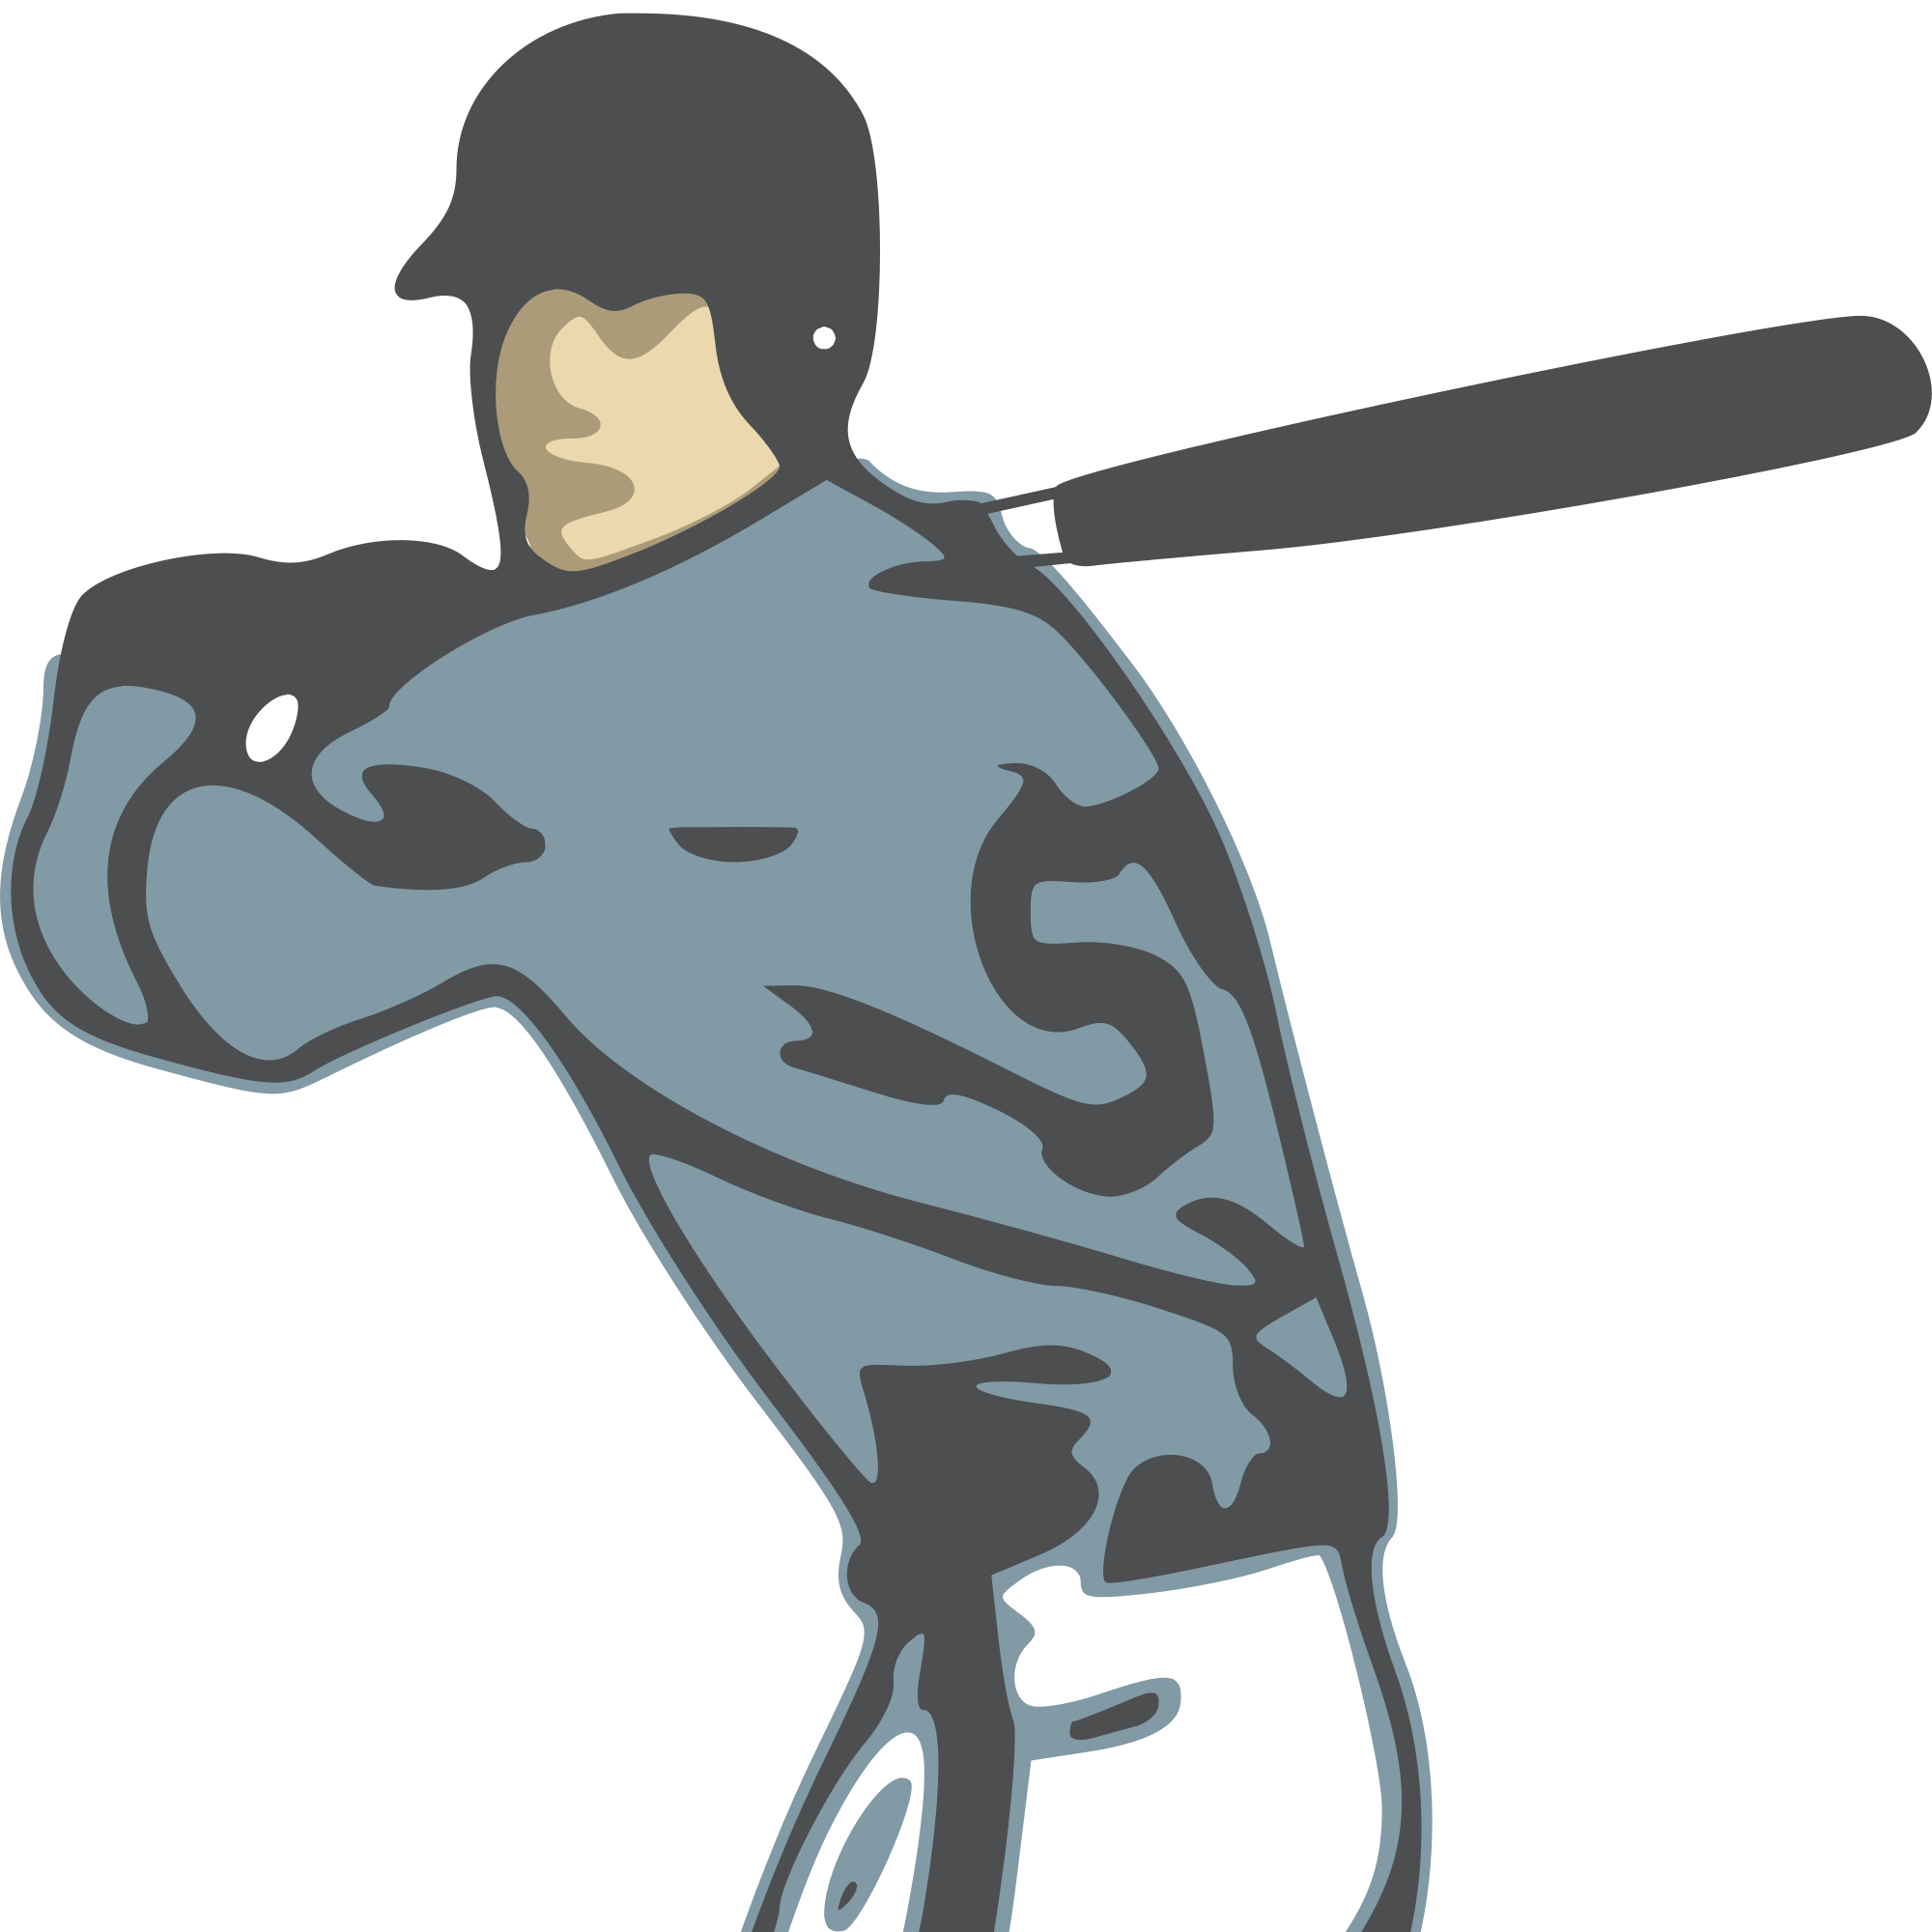 Baseball girl clipart graphic transparent Baseball Batter Clipart at GetDrawings.com | Free for personal use ... graphic transparent